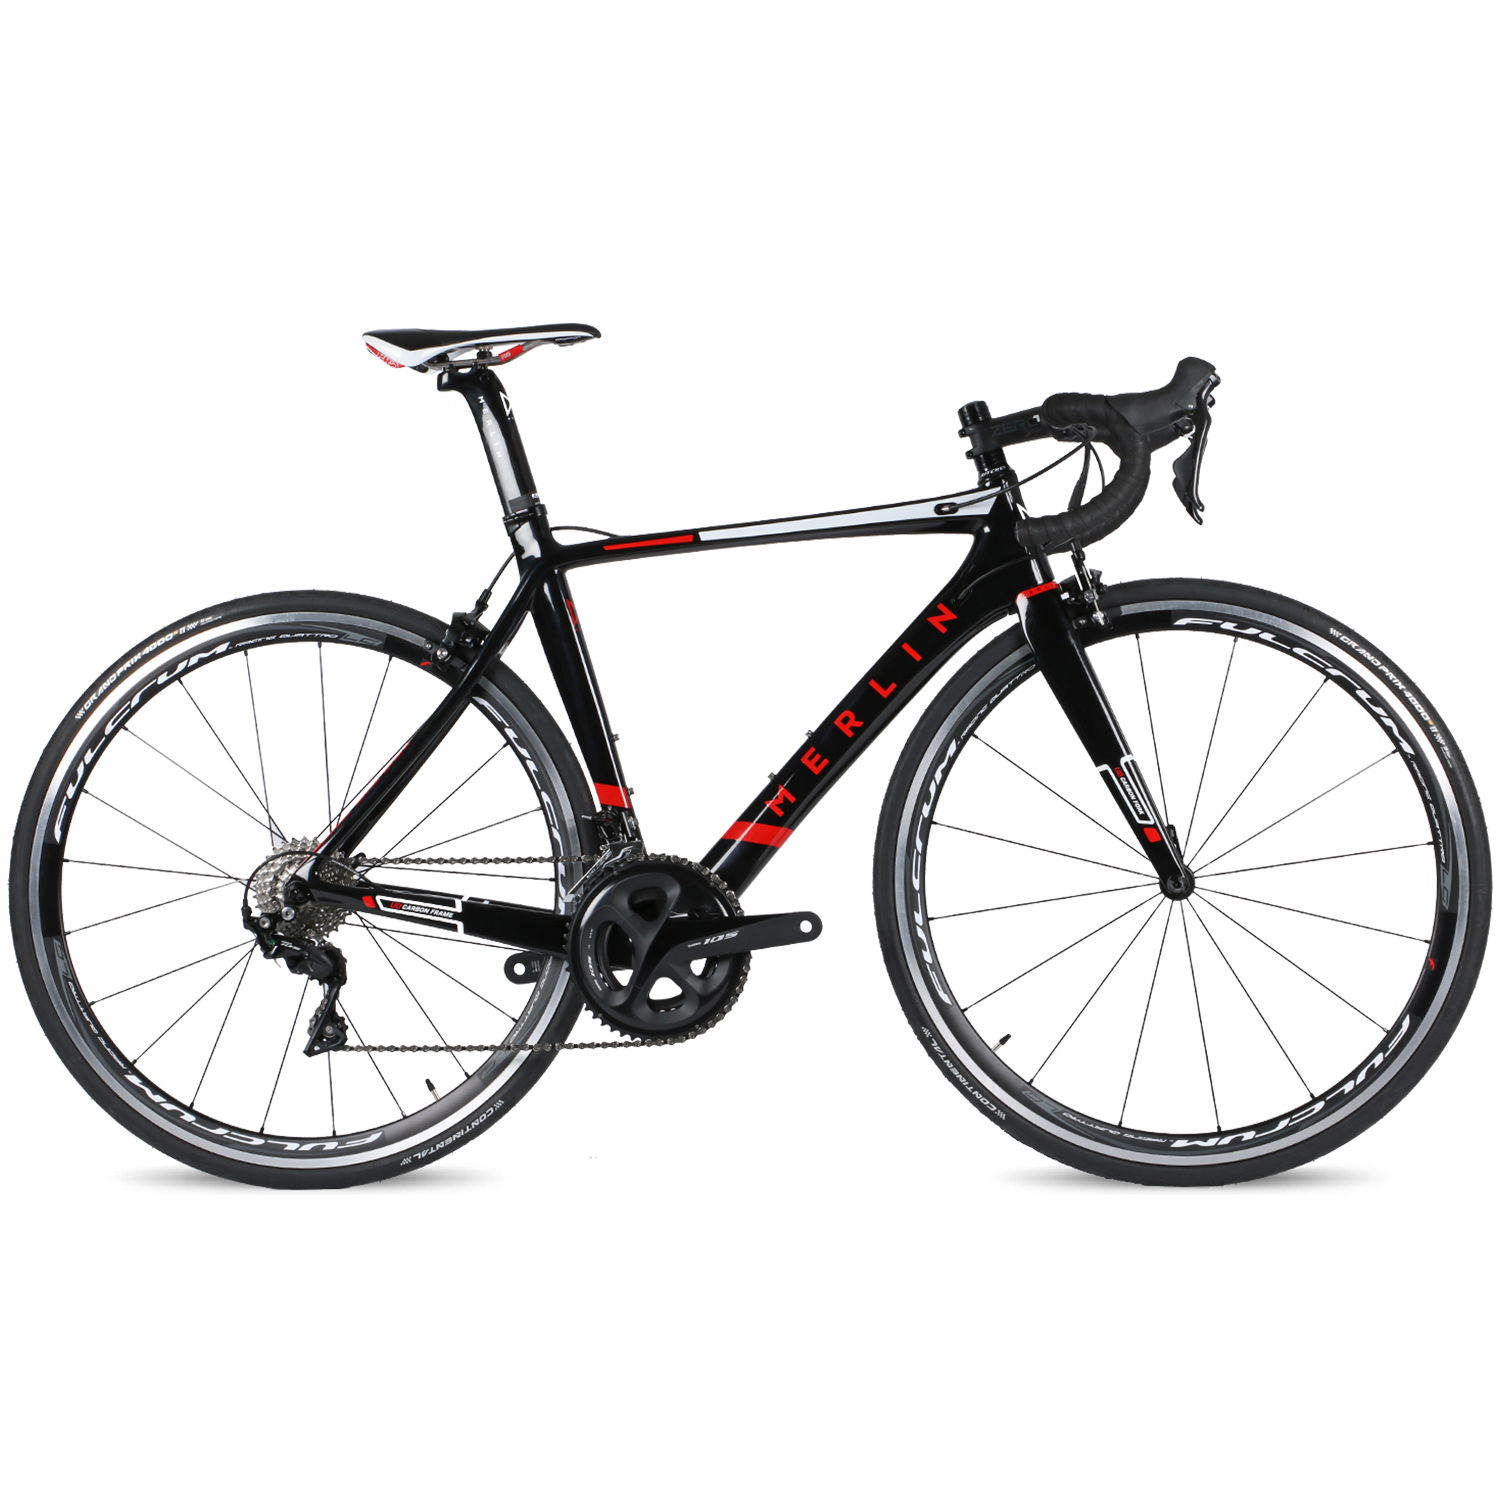 Merlin Nitro Aero 105 R7000 Carbon Road Bike - 2019